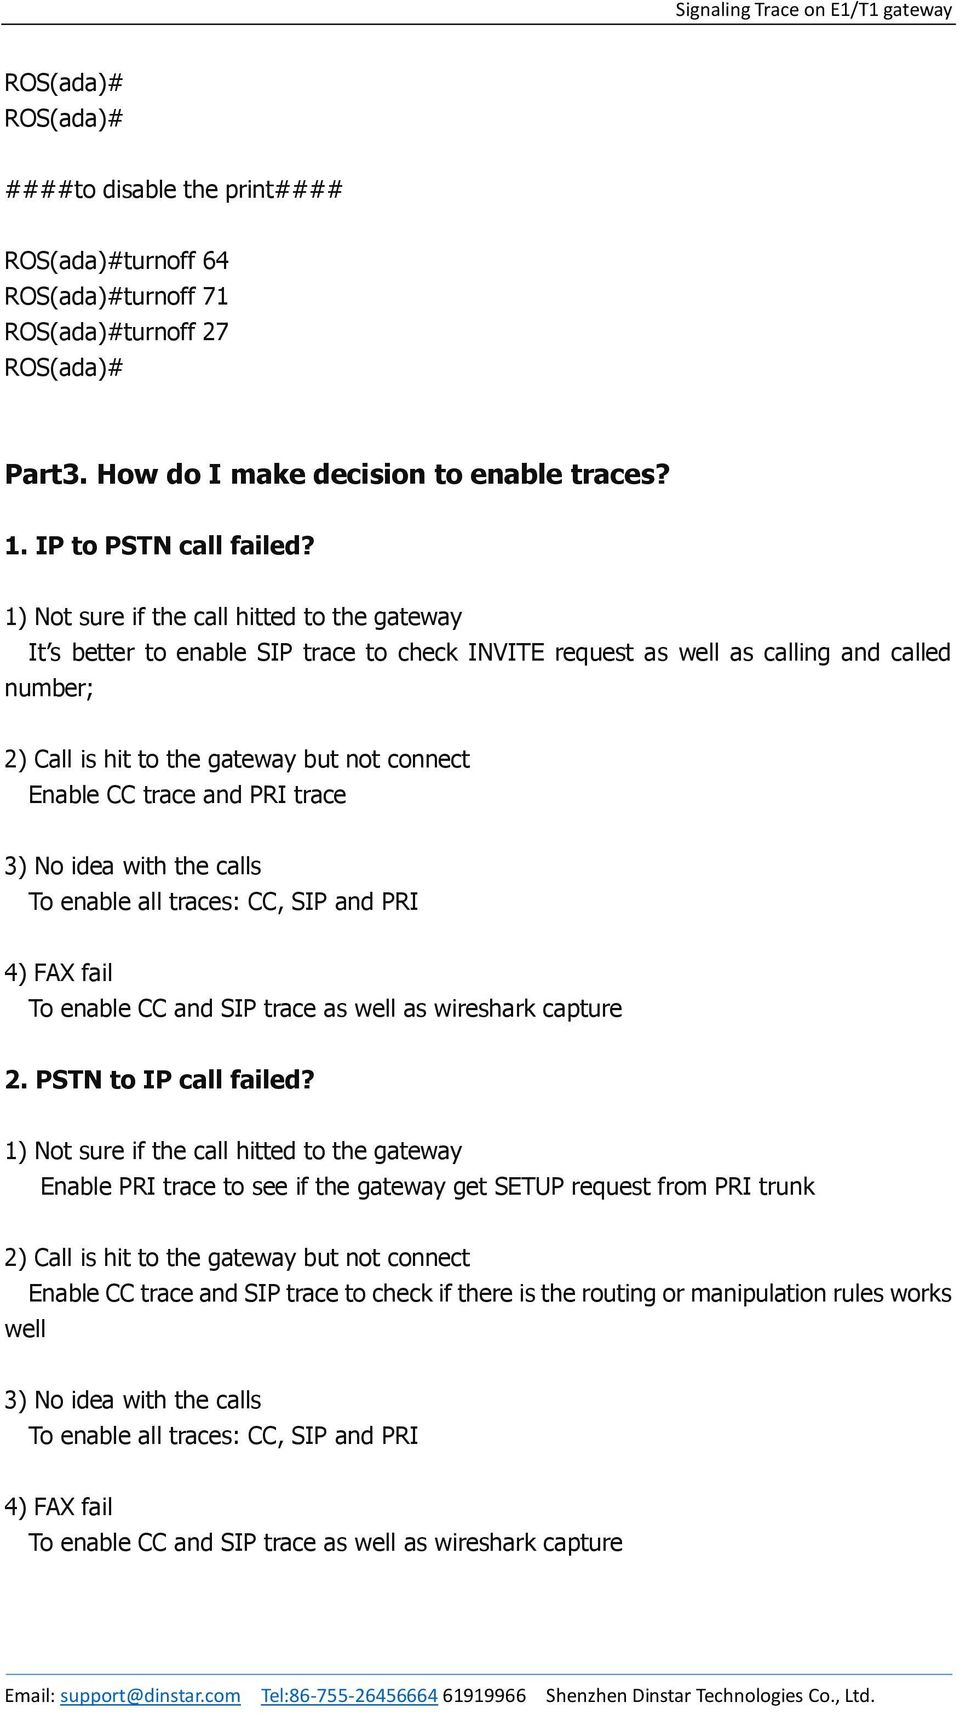 trace and PRI trace 3) No idea with the calls To enable all traces: CC, SIP and PRI 4) FAX fail To enable CC and SIP trace as well as wireshark capture 2. PSTN to IP call failed?